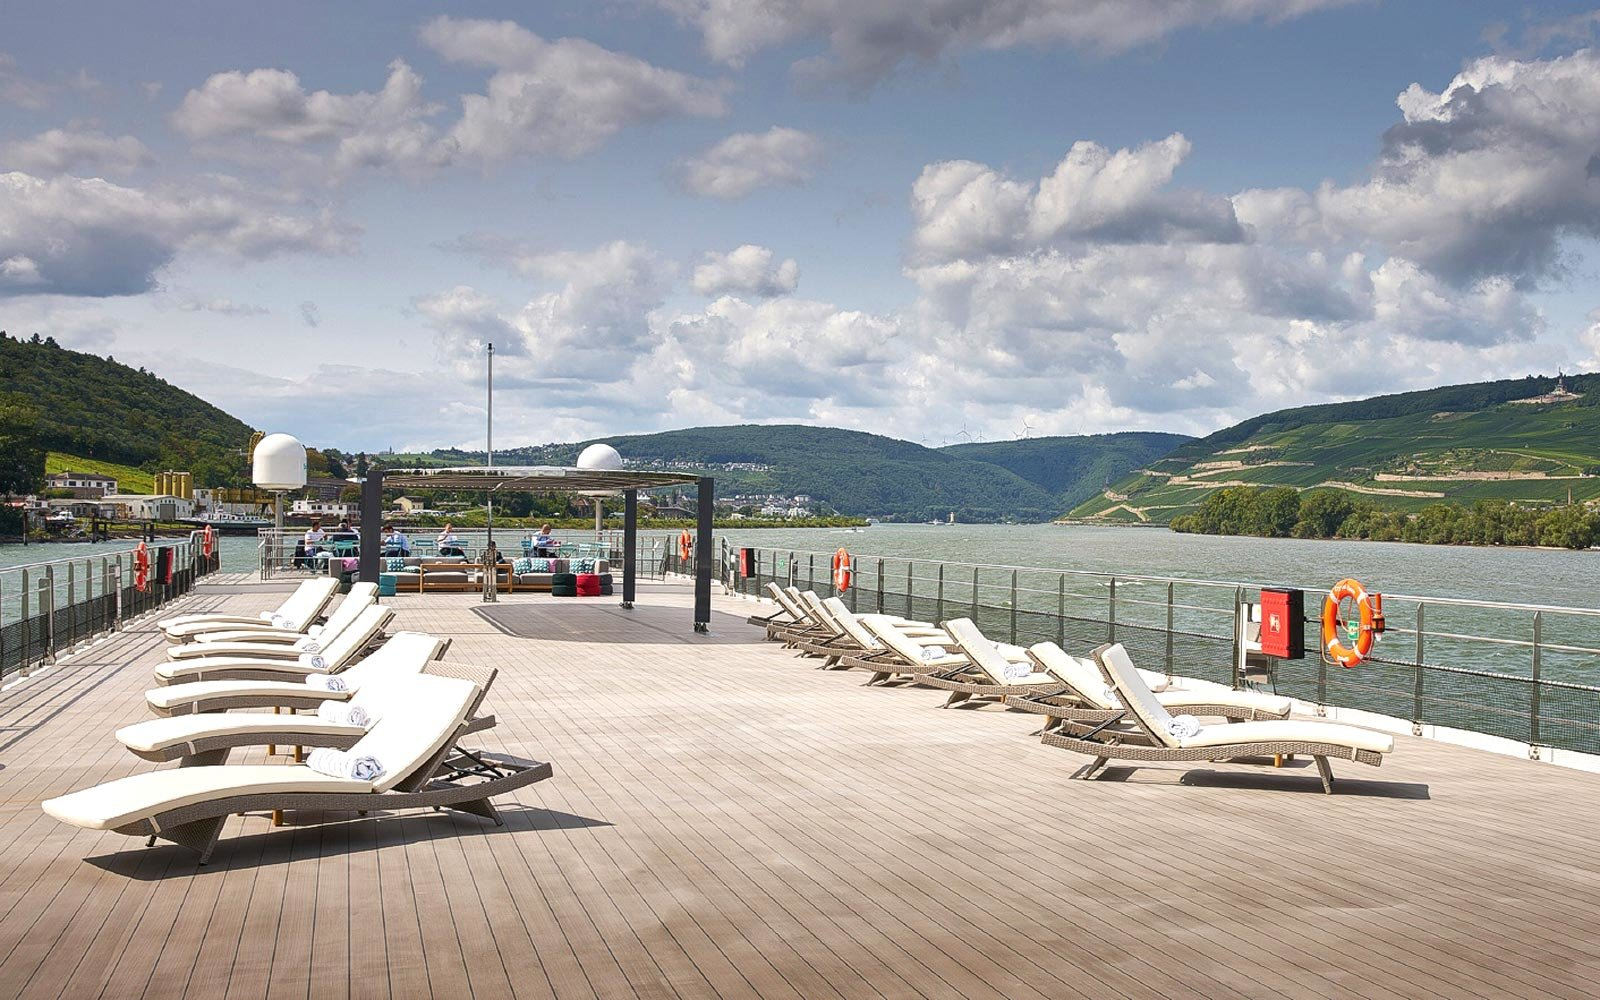 Top deck of the Crystal Cruises Rhine class river ships